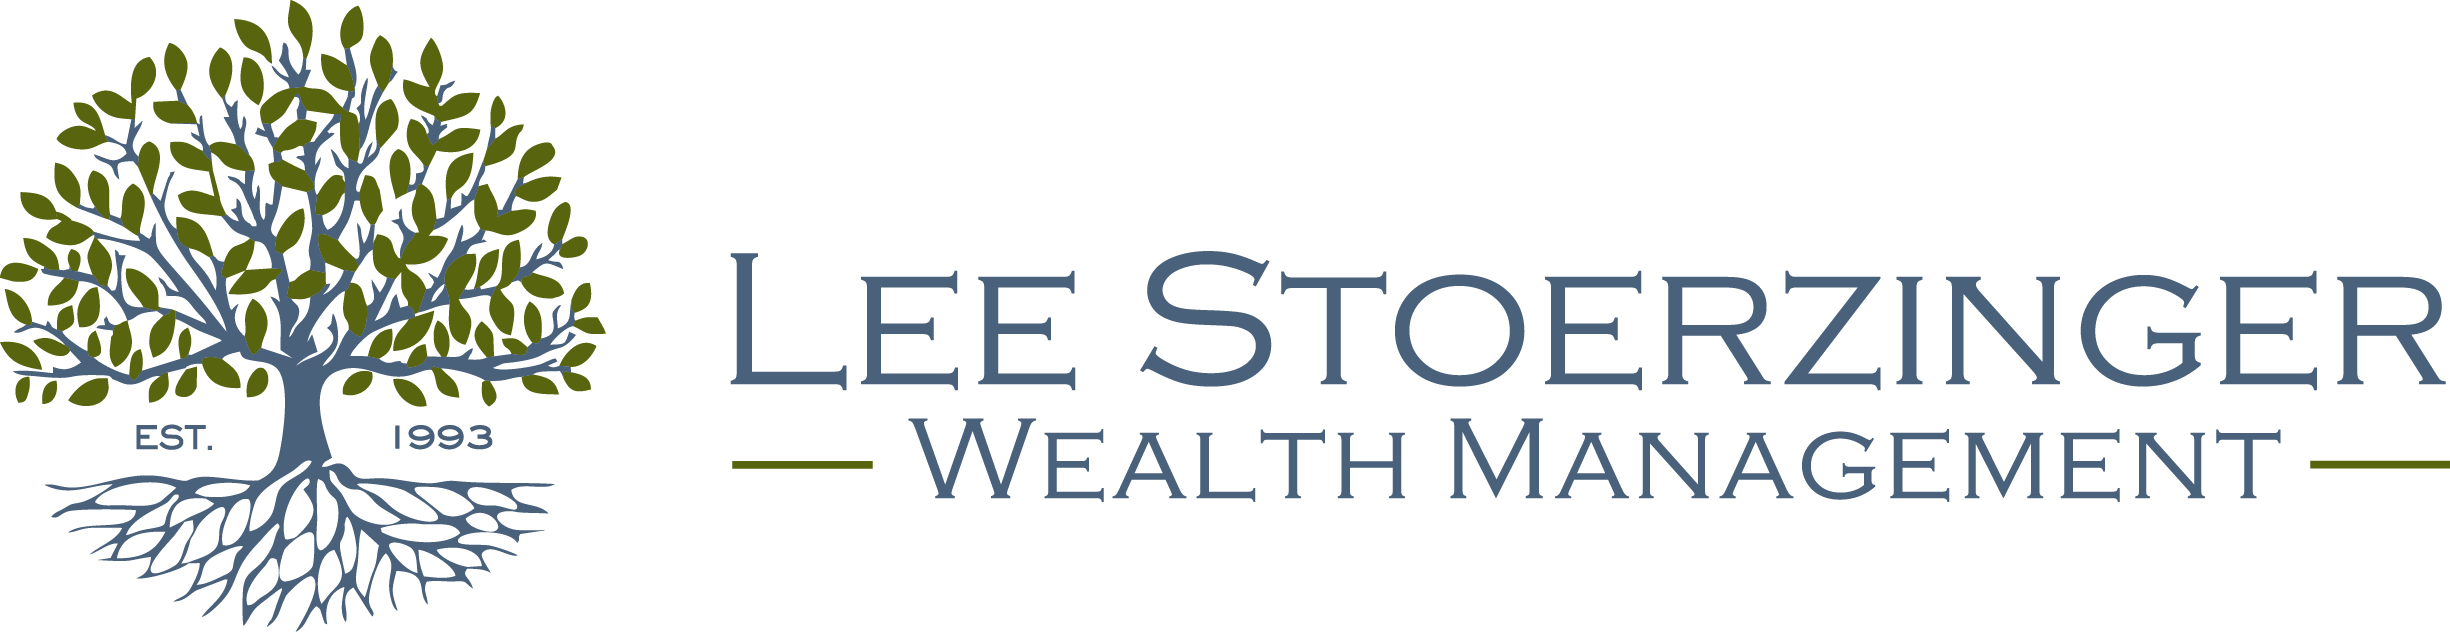 Lee Stoerzinger Wealth Management